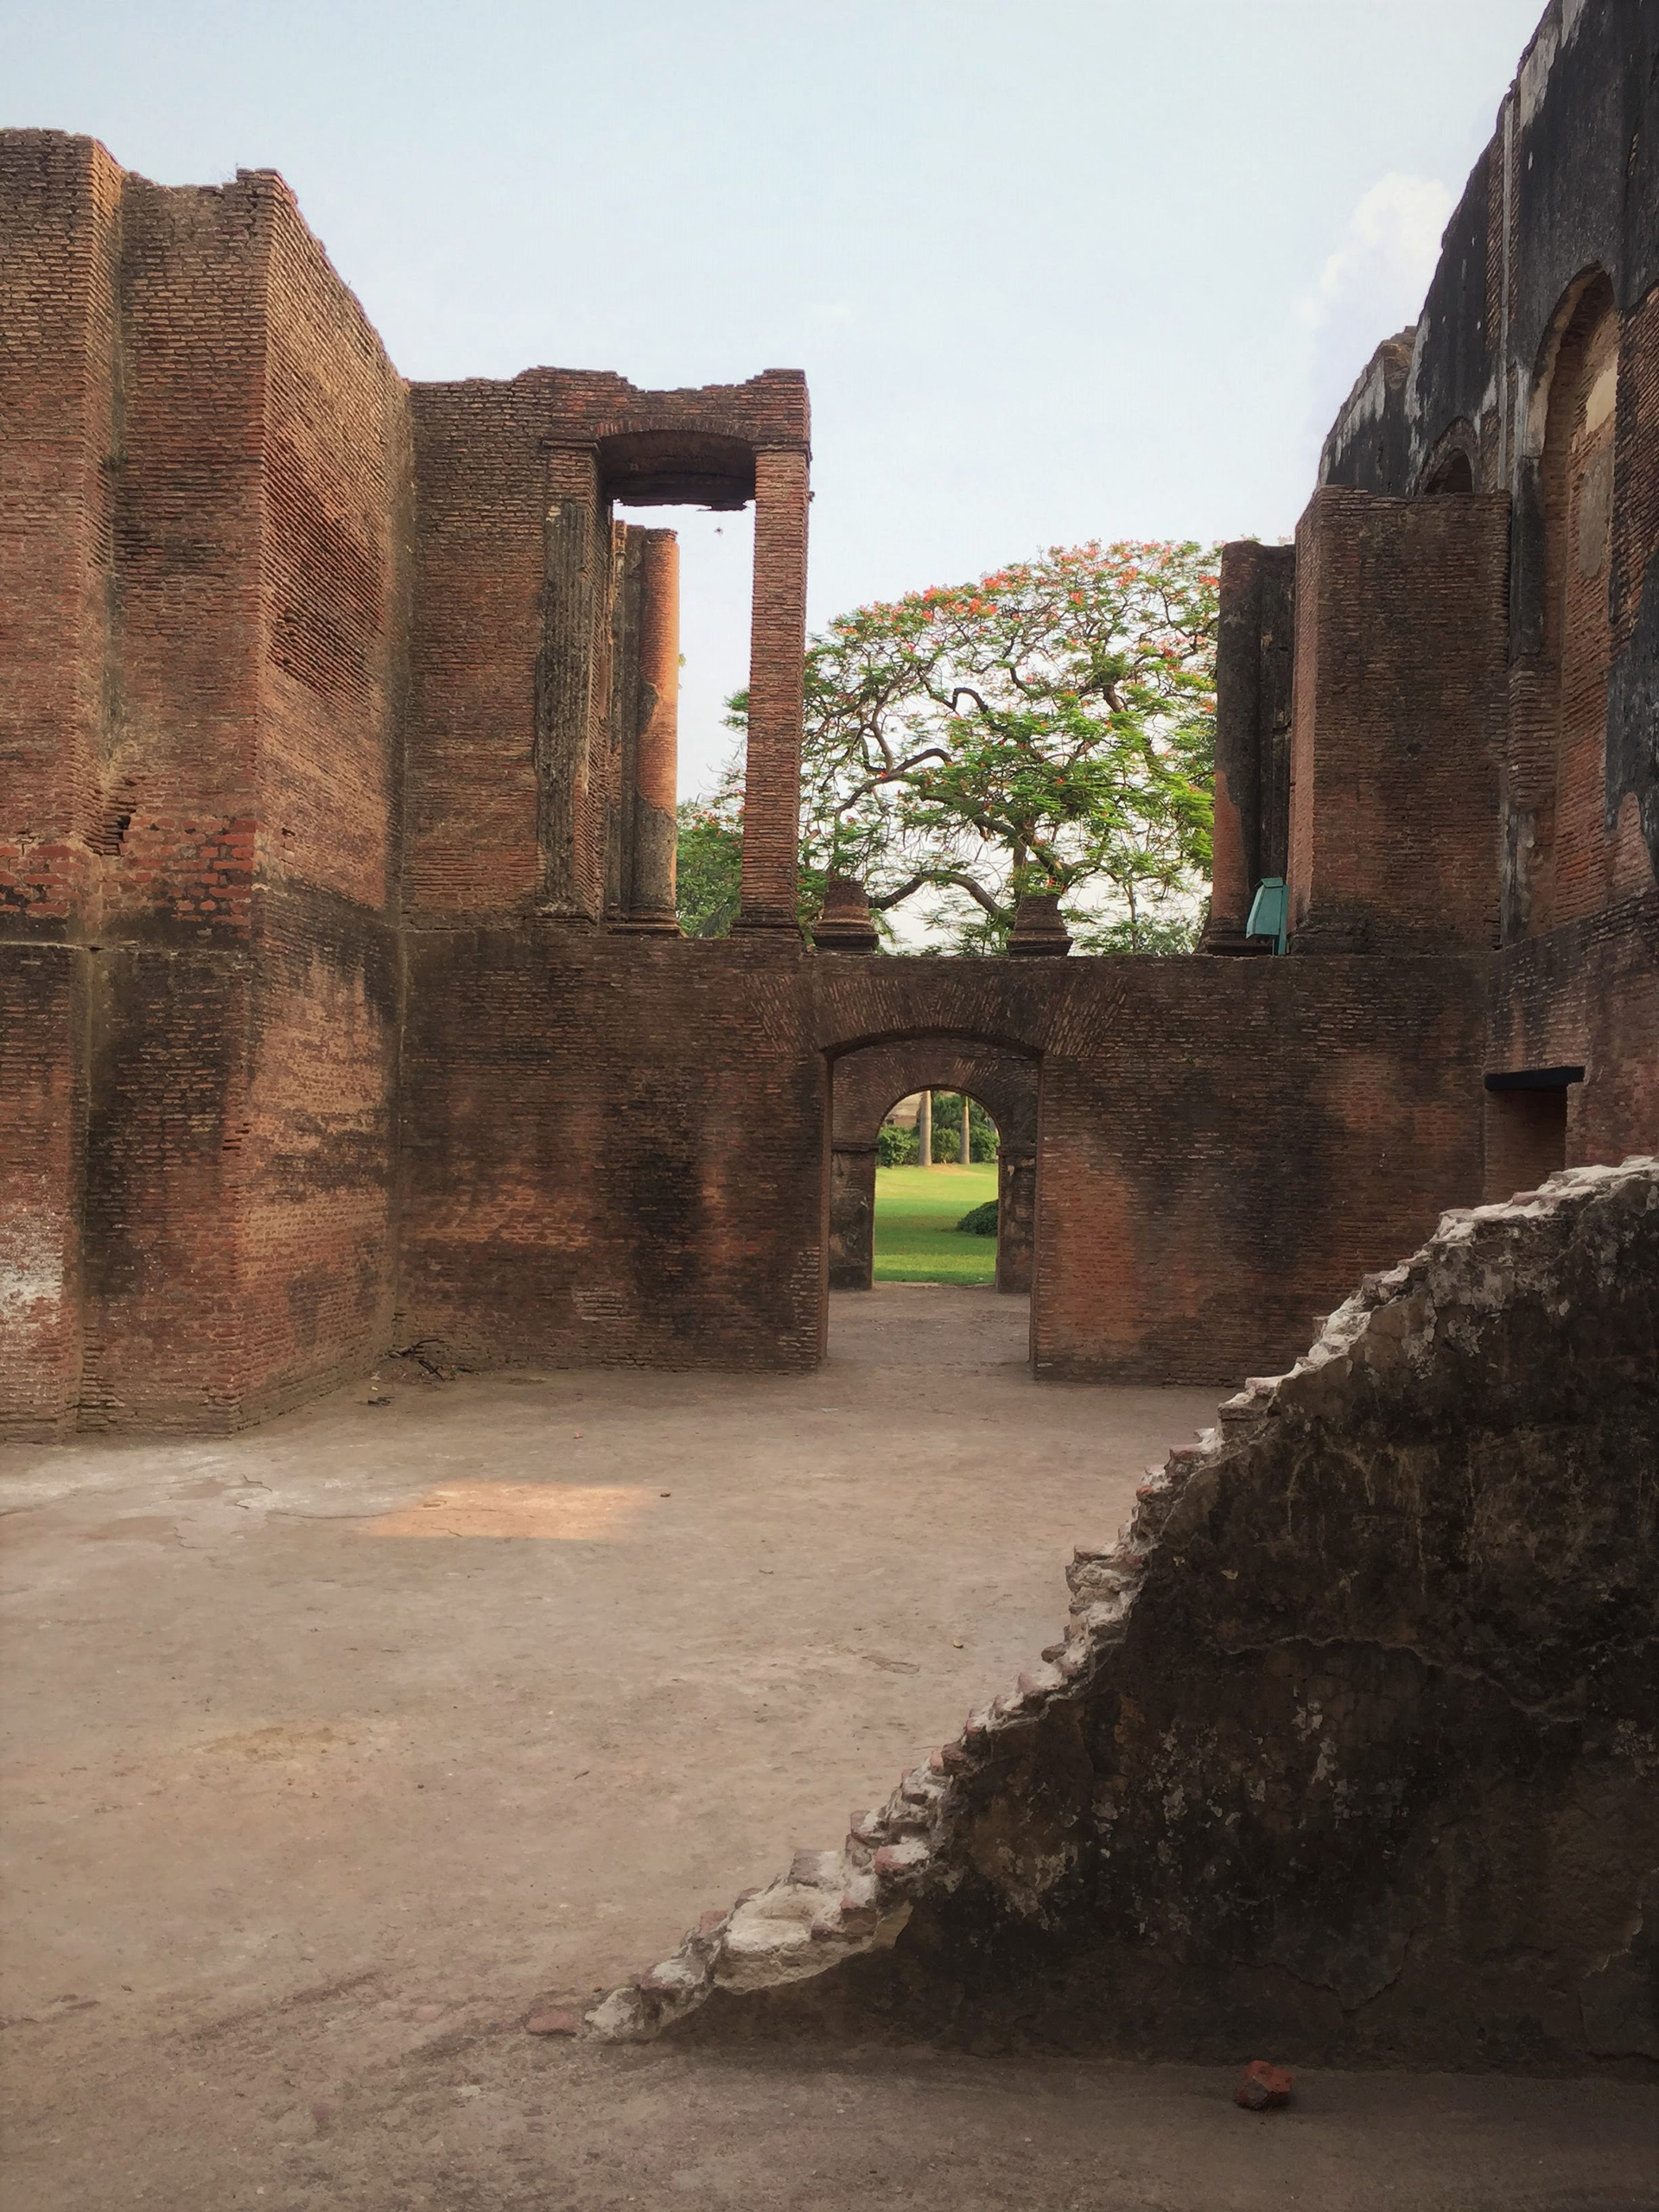 The ruin now is a part of the landscape that it so desired to be with| The Residency| Lucknow| Soumitro Ghosh| STIR